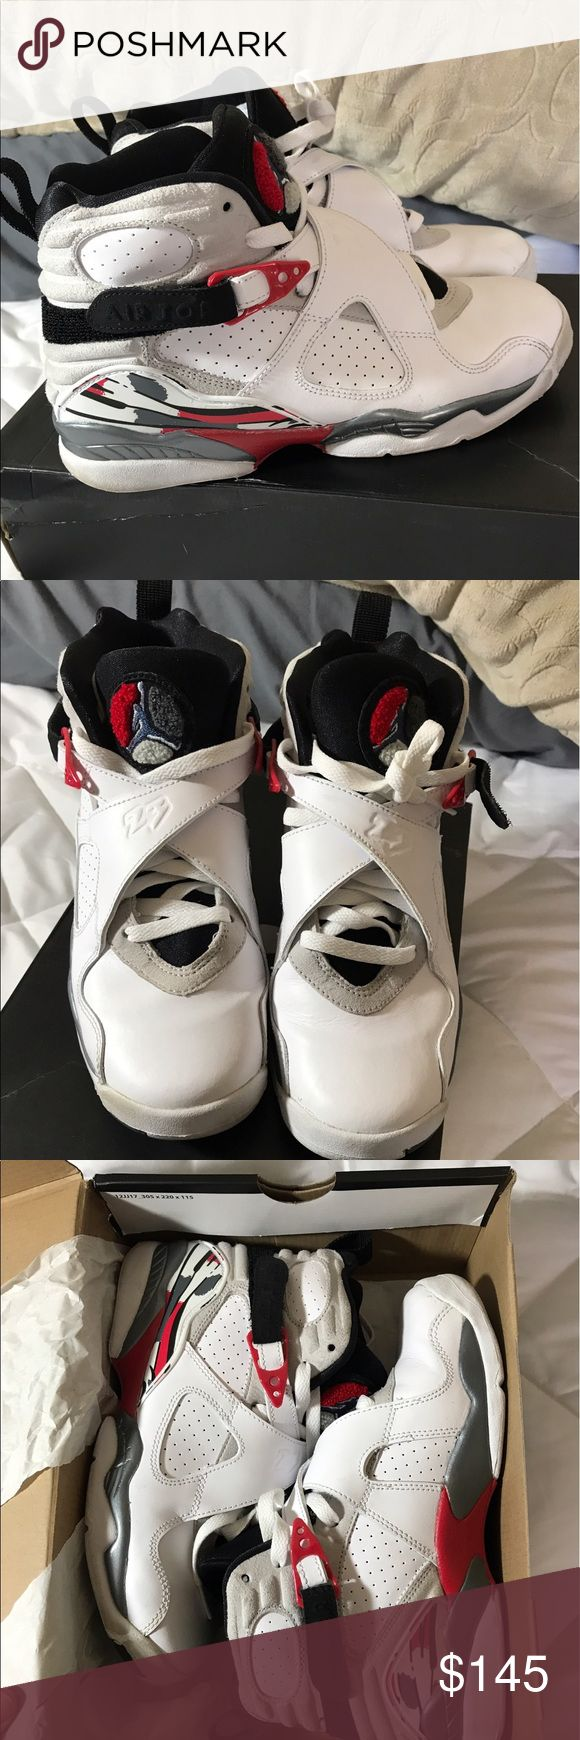 Air Jordan Retro 8 Bugs Bunny These are pretty hard to find, the bugs bunny edition. All the Jordan's I'm selling were gifted to me and I never wore them. Not really my style.. So I'm selling them Size 6 youth. I usually wear a 7.5 women's and these fit just the same maybe a tiny bit more snug. so I'm listing as size 7 even though it is kids 6. It fits like a 7-7.5 Womens. Jordan Shoes Sneakers